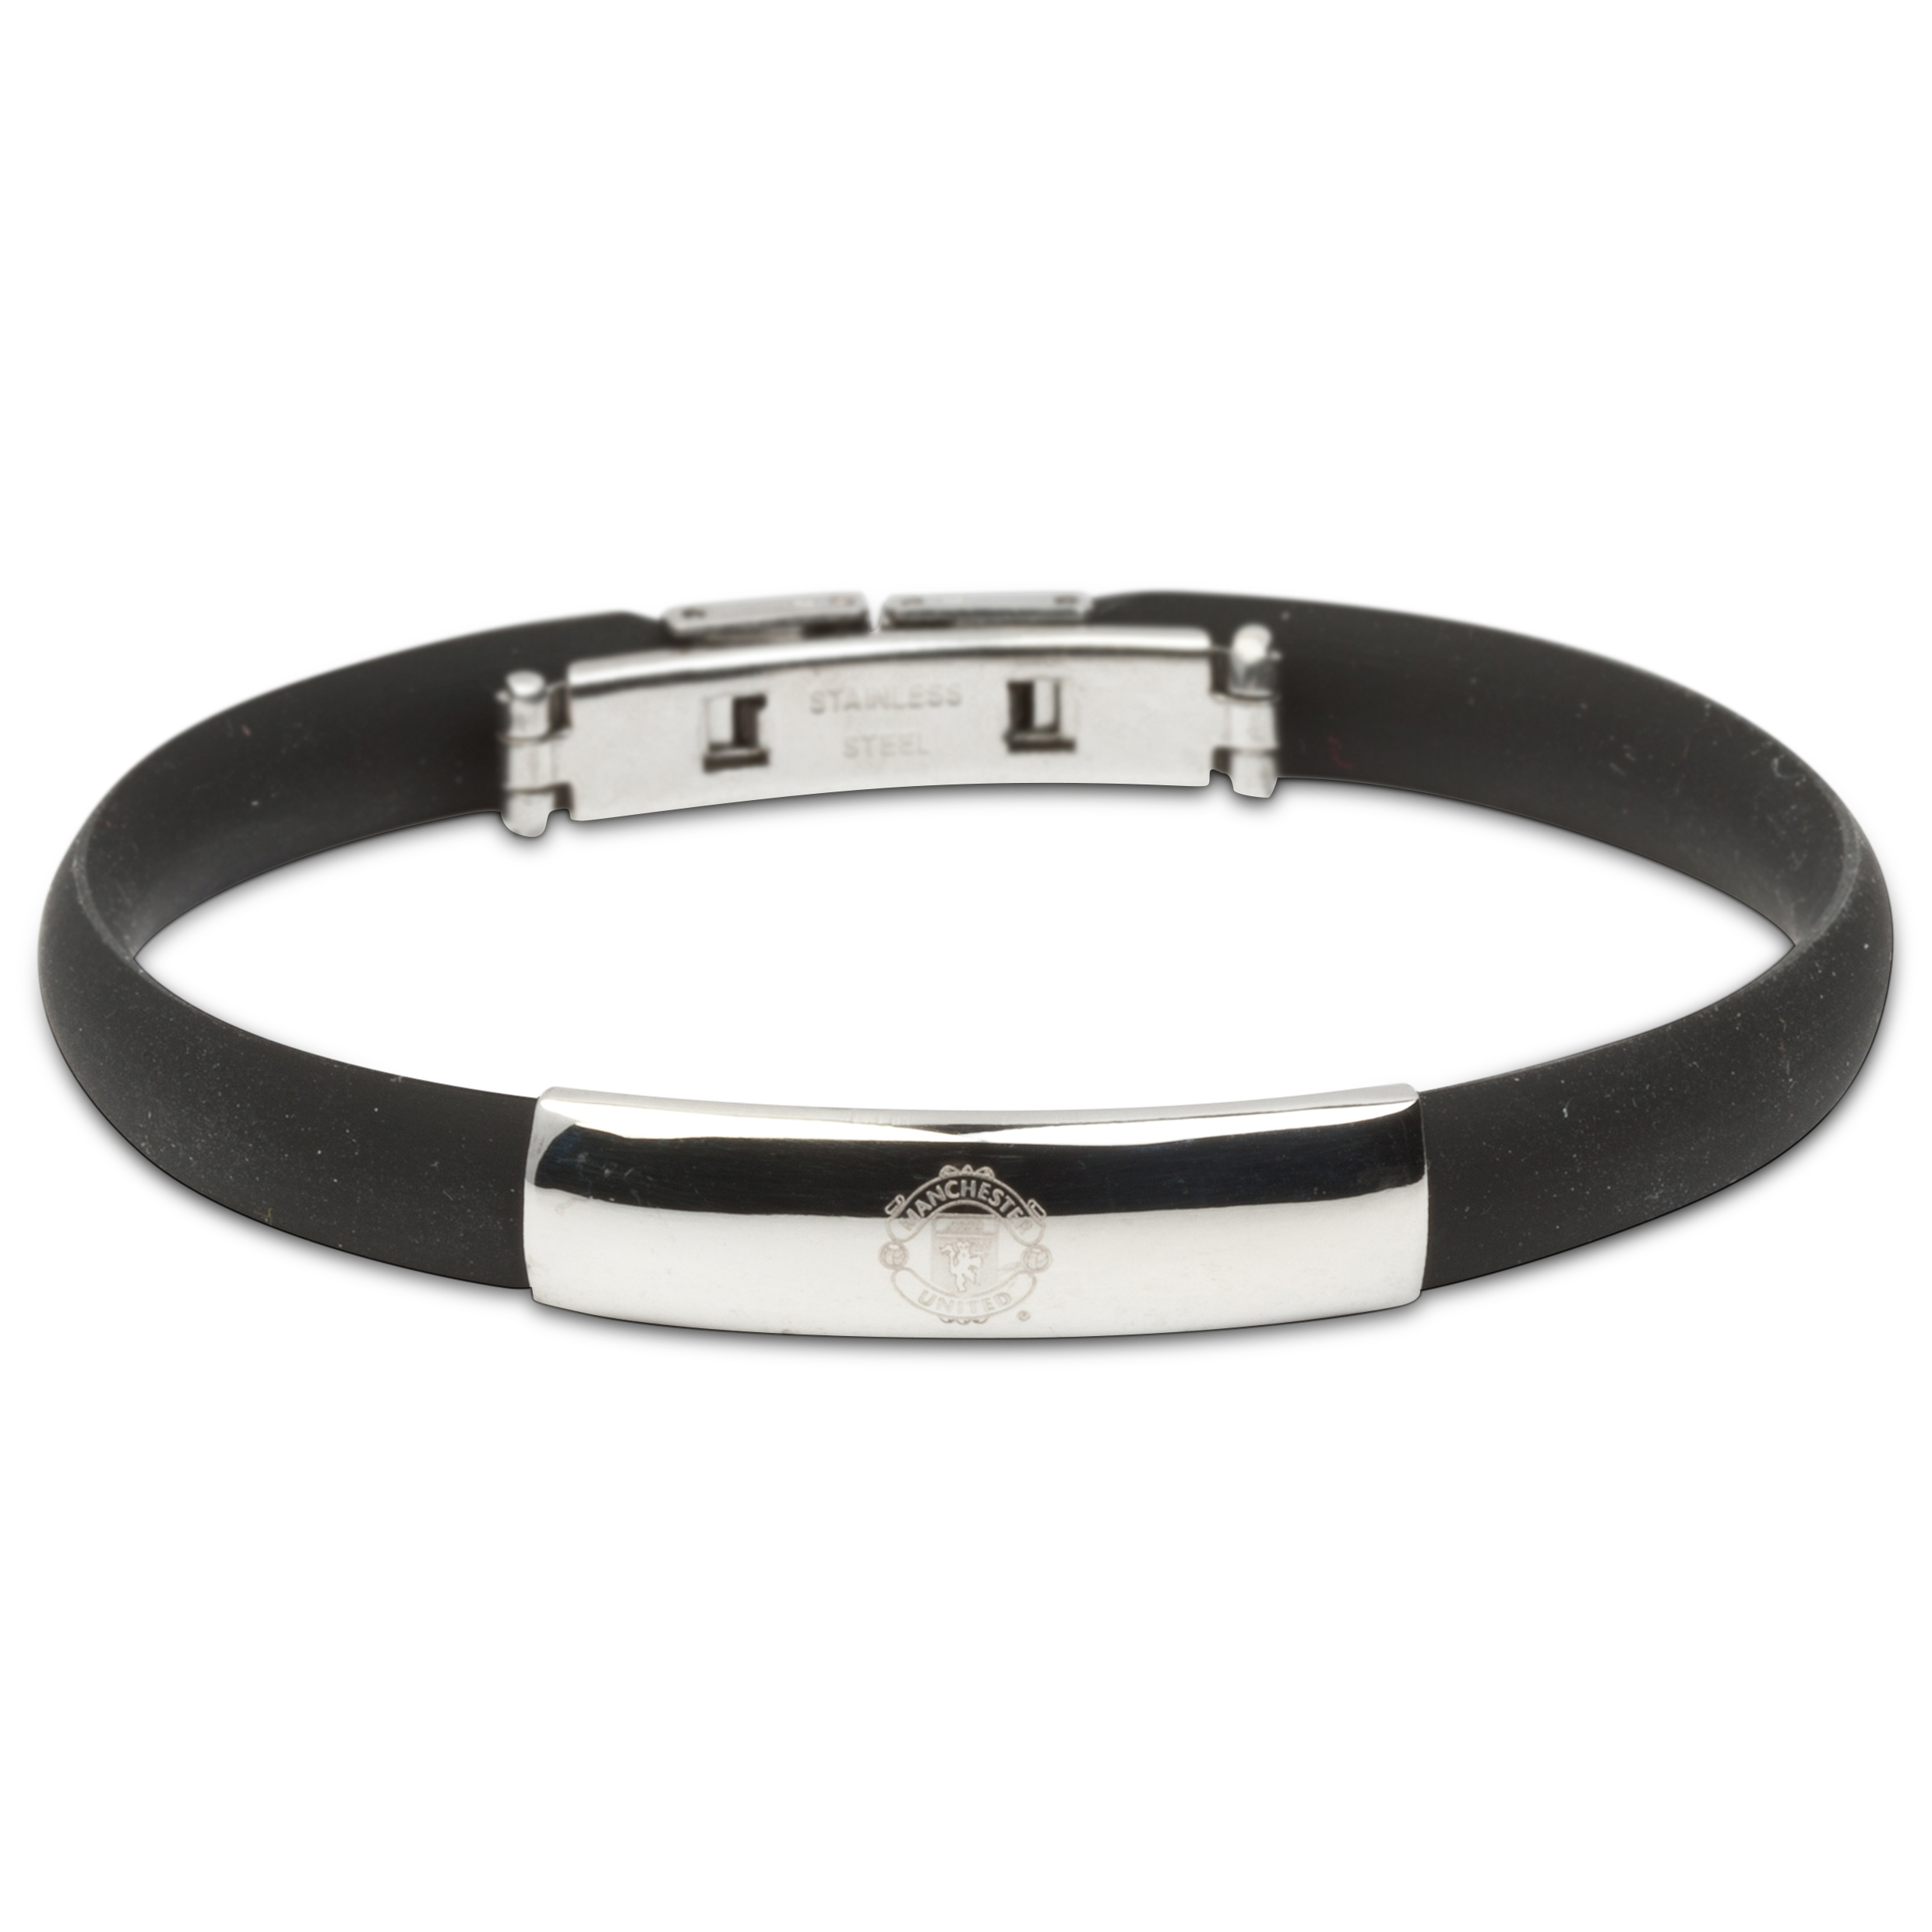 Manchester United Rubber Band Crest Bracelet - Black - Stainless Steel